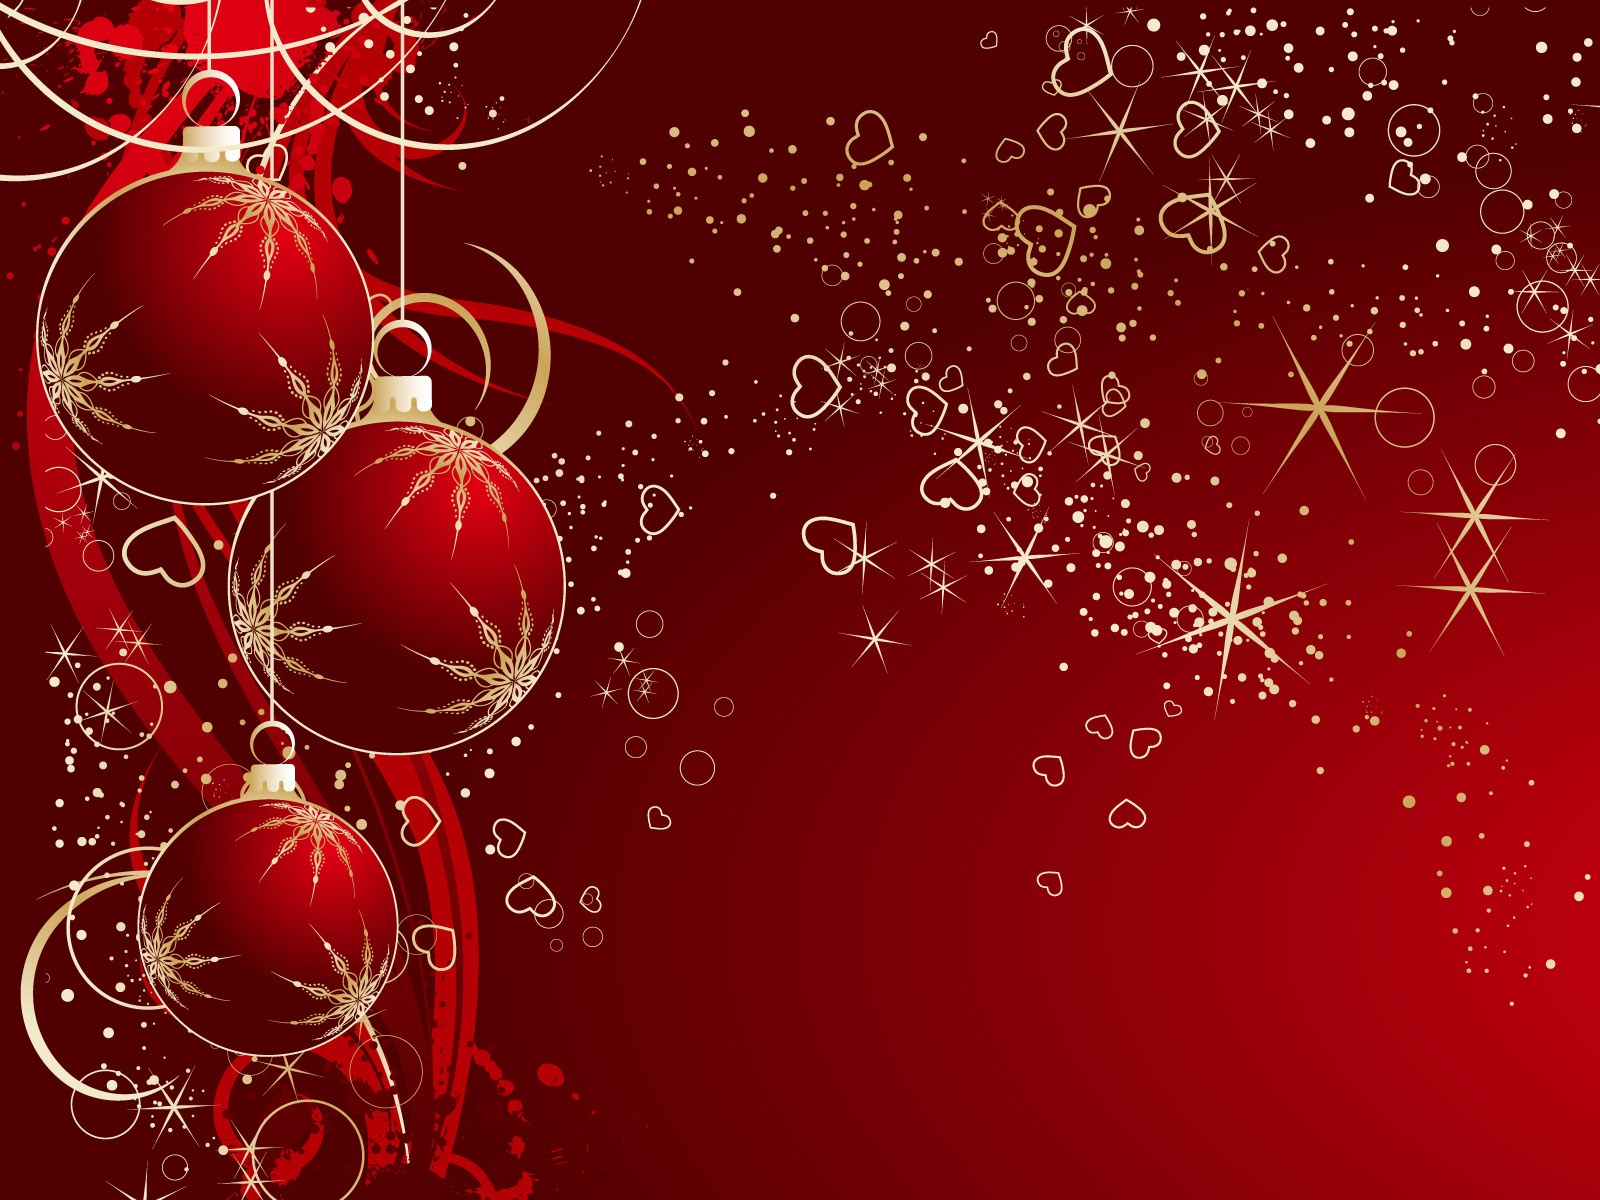 Christmas Wallpaper HD:Computer Wallpaper